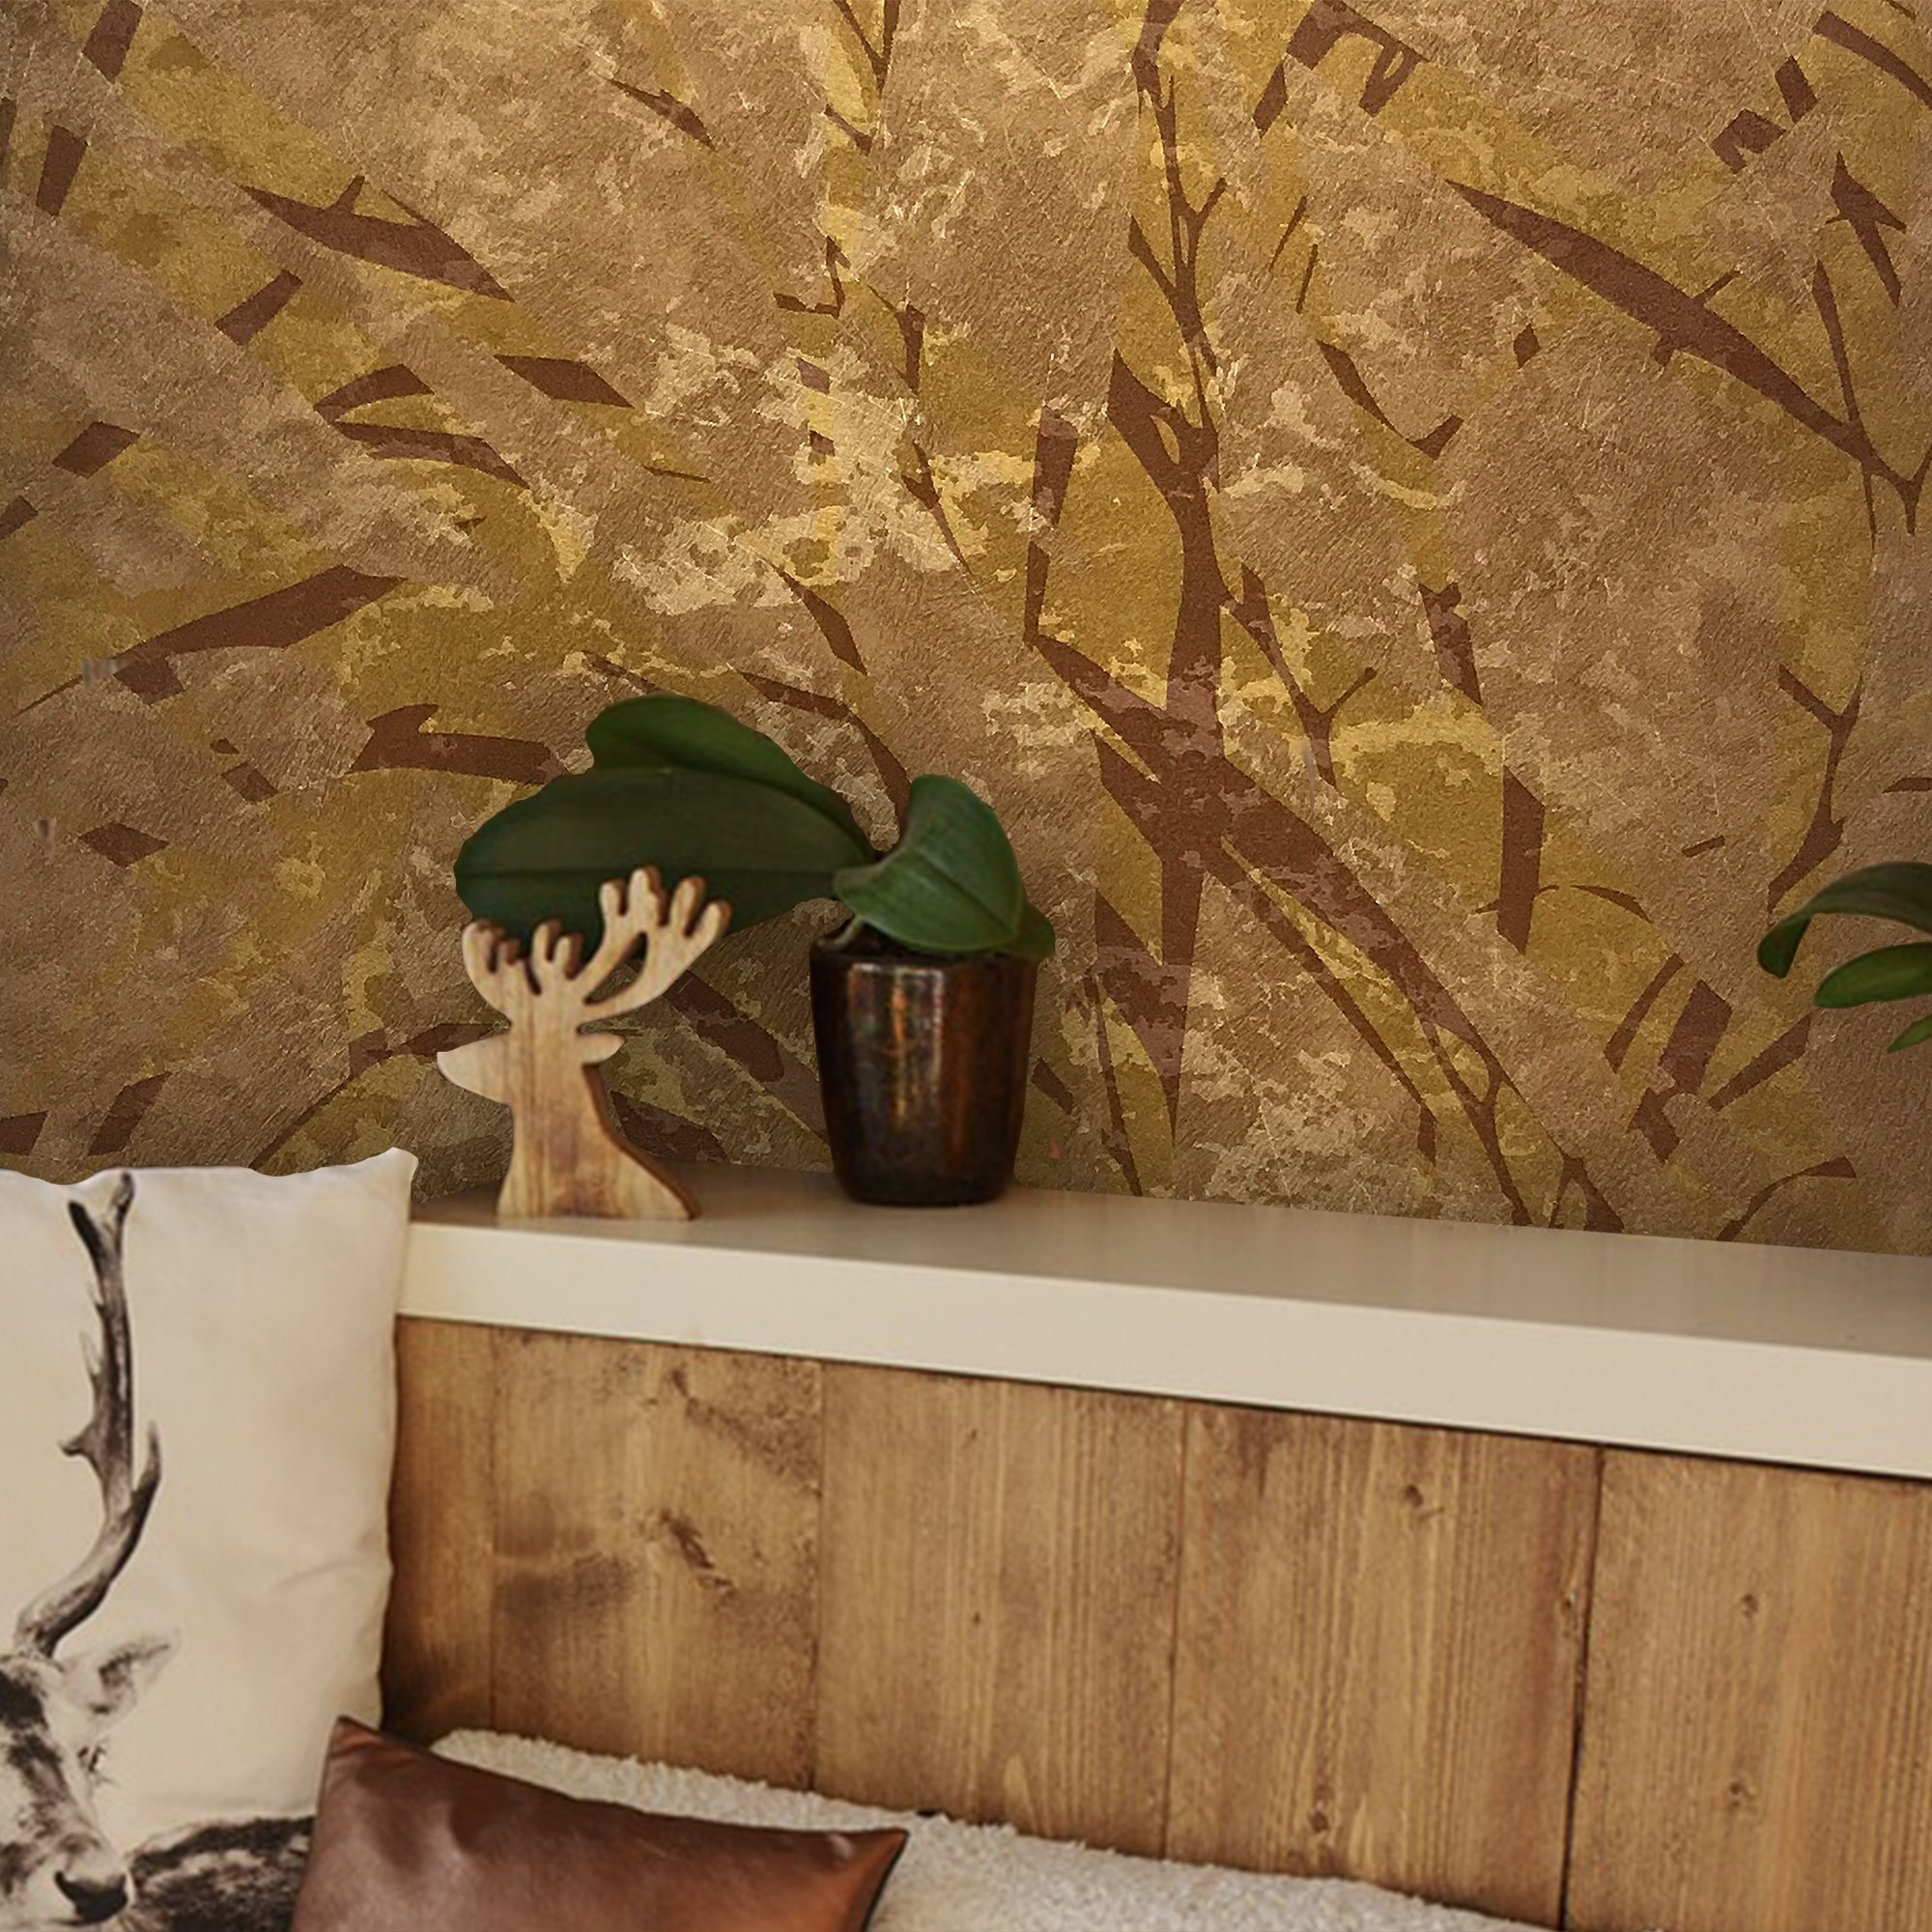 76 sq.ft Made in Italy Portofino wallcoverings rolls modern embossed Vinyl Non-Woven Wallpaper copper bronze gold metallic abstract art textured tropical tree leaves design texture paste the wall only